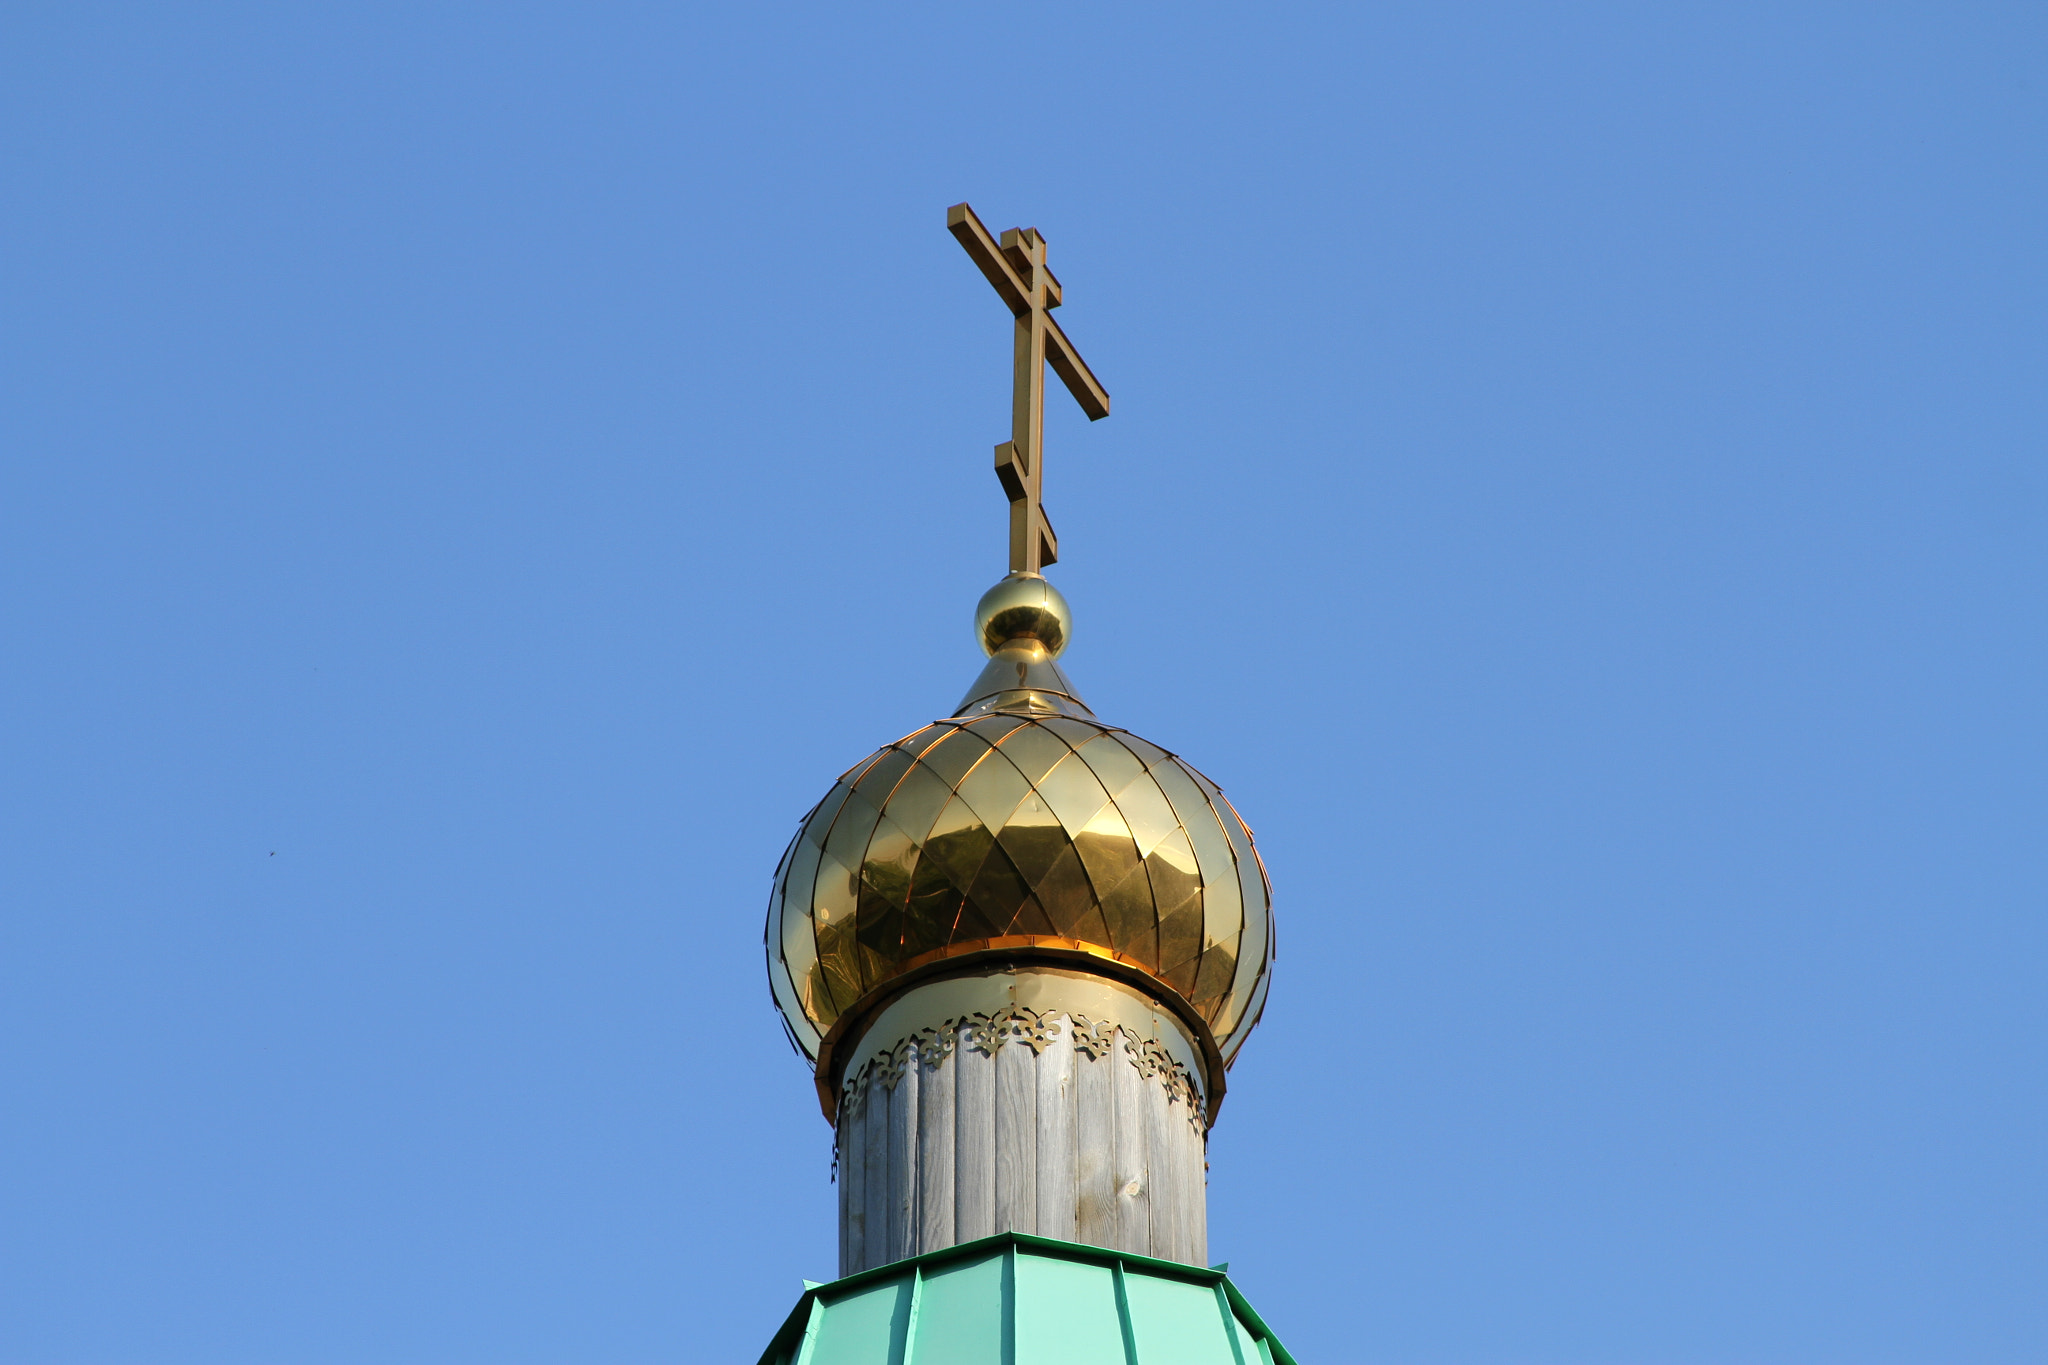 Photograph church dome by Pavel Baharev on 500px